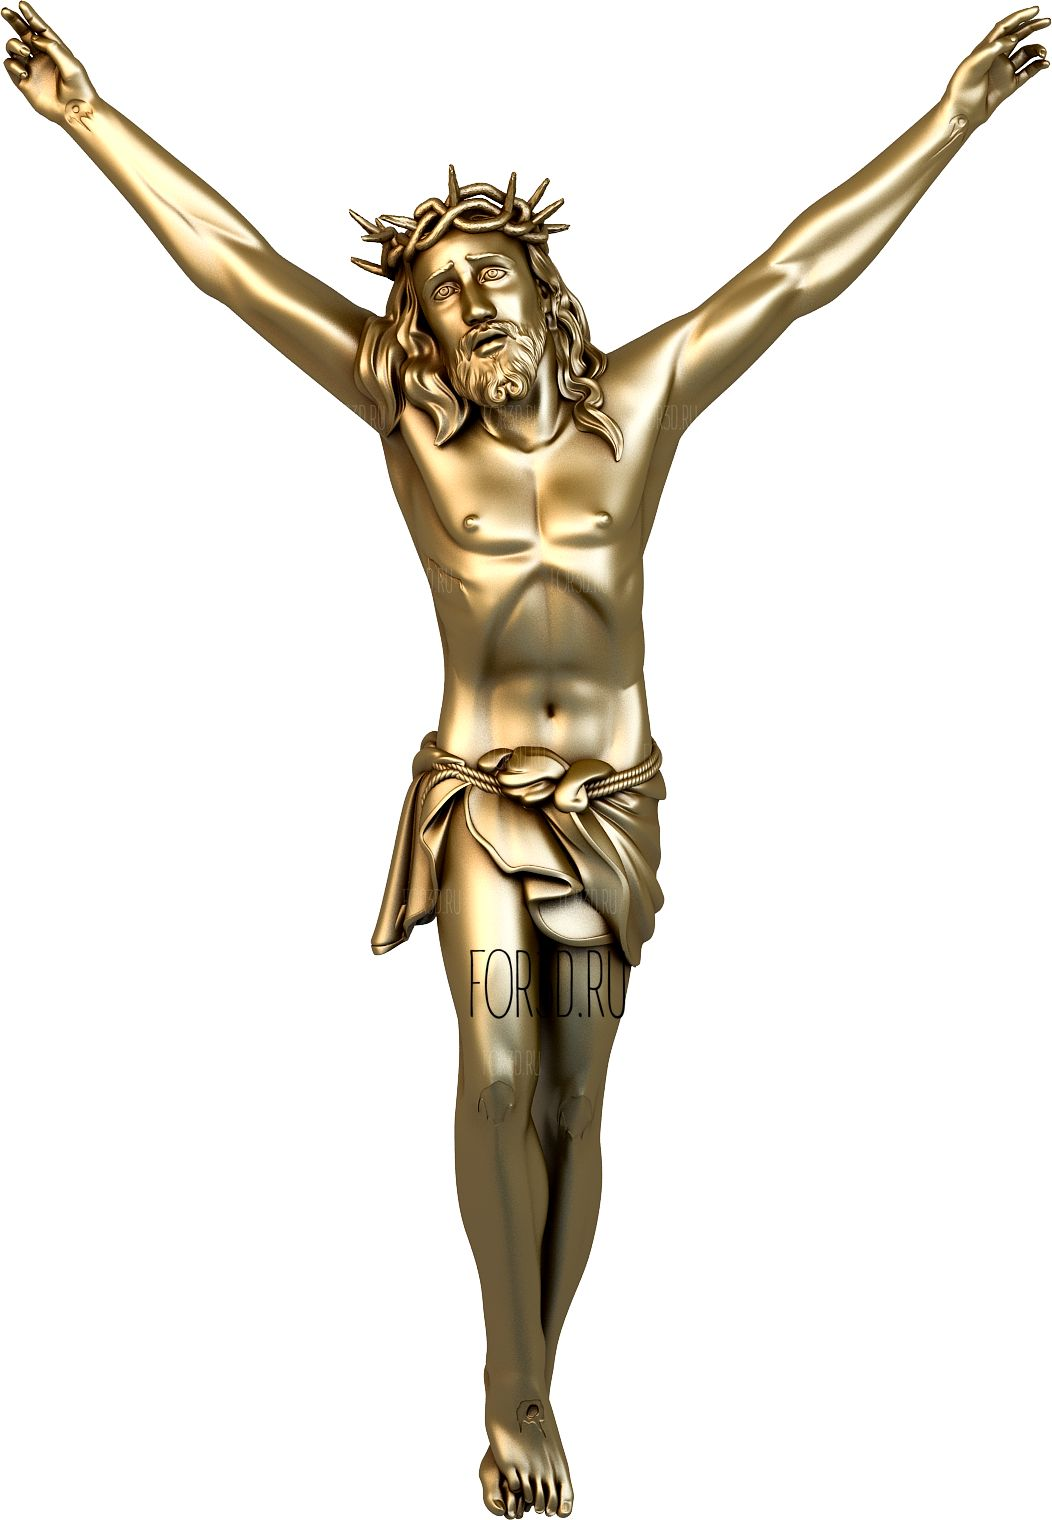 Crucifixion of Jesus 0006 3d stl модель для ЧПУ